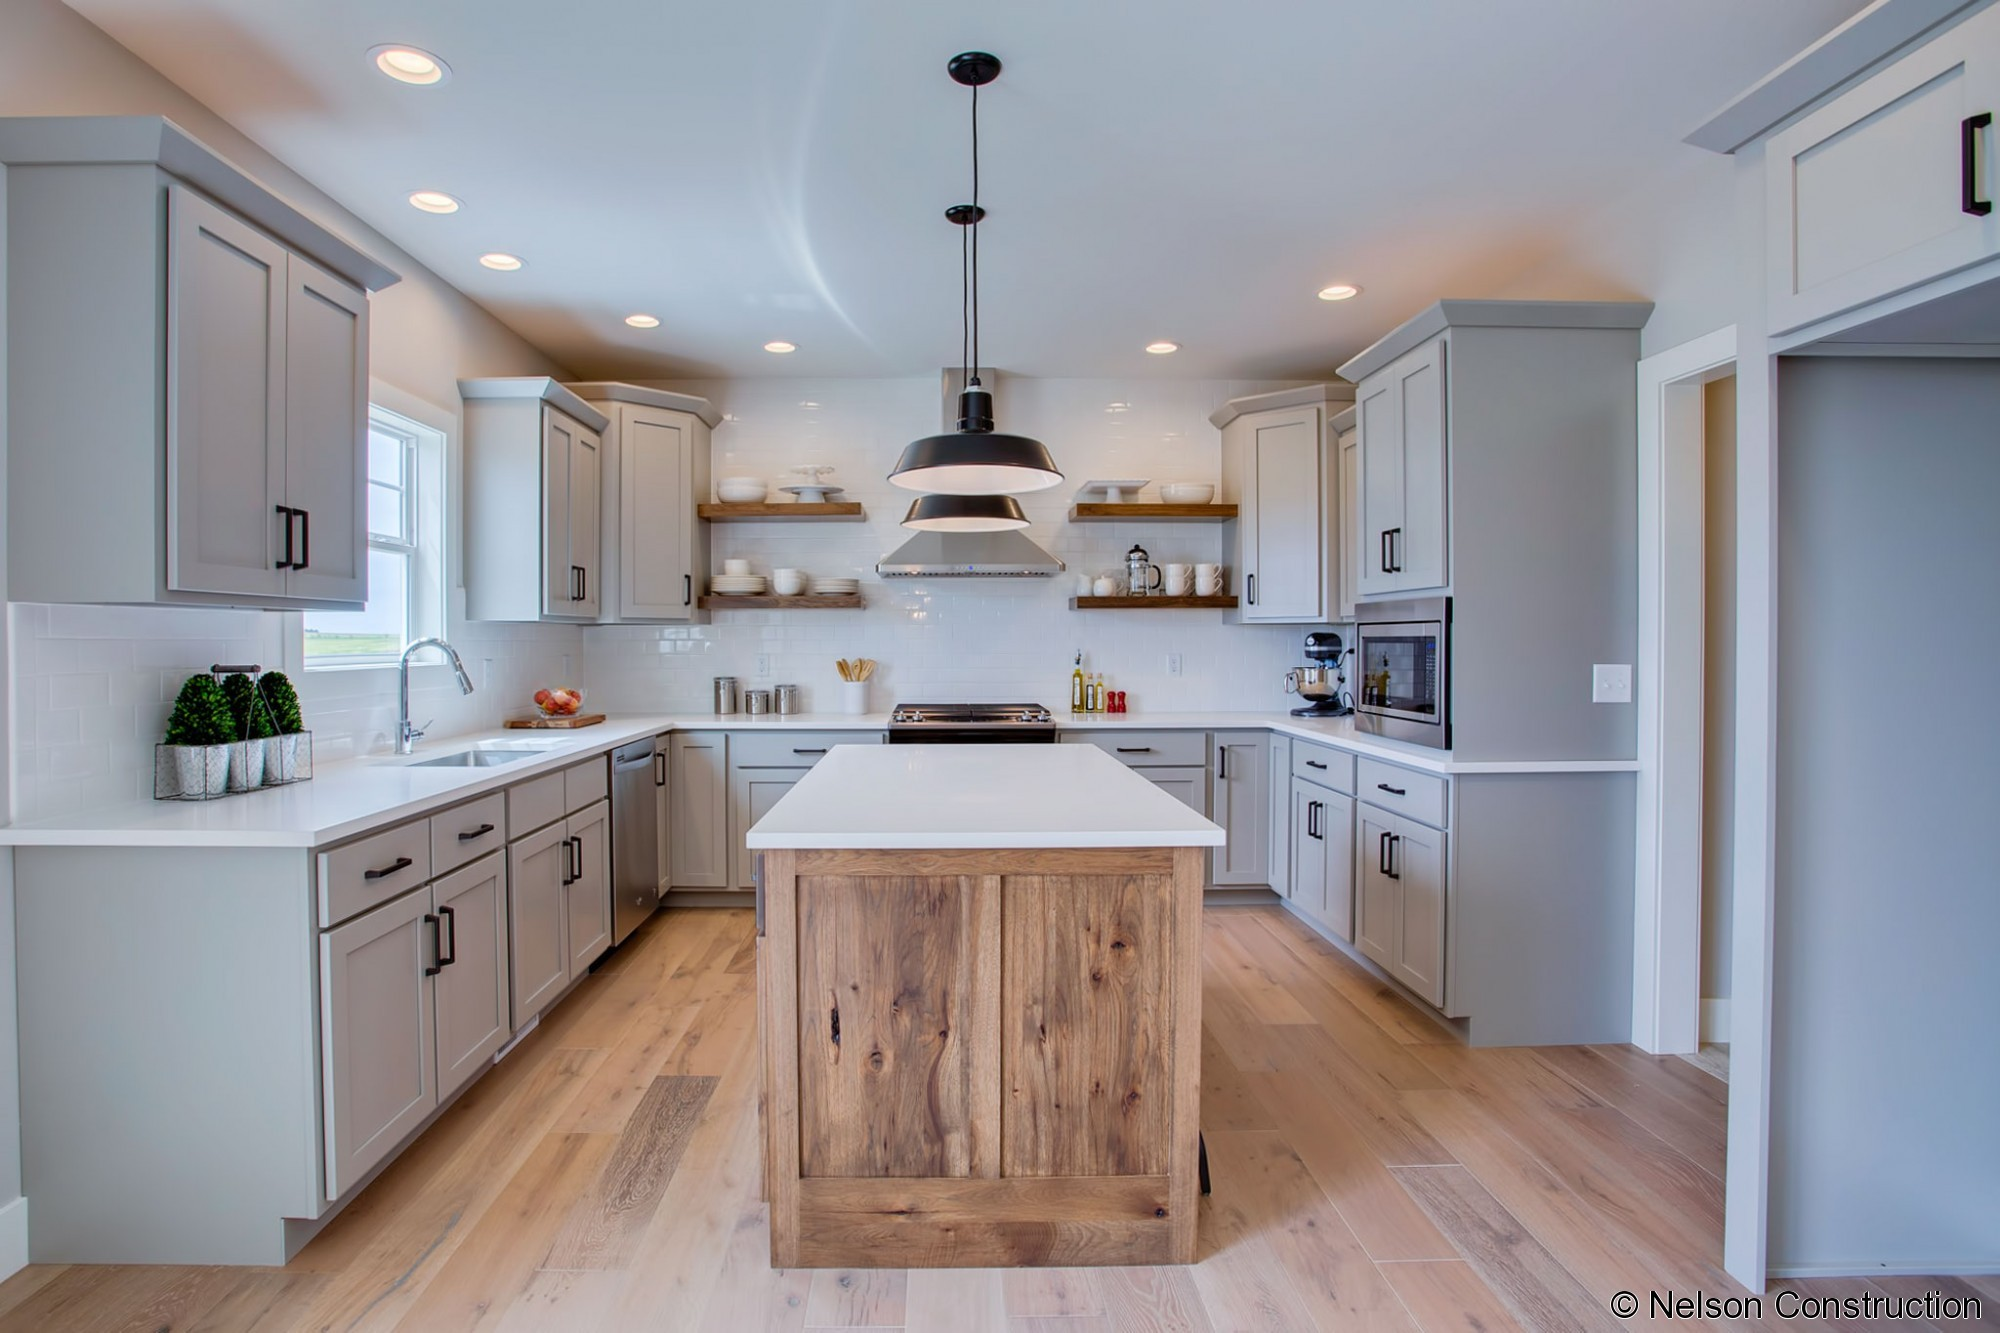 The kitchen of this new home by Nelson Builders is highlighted by the rustic hickory island and floating shelves.